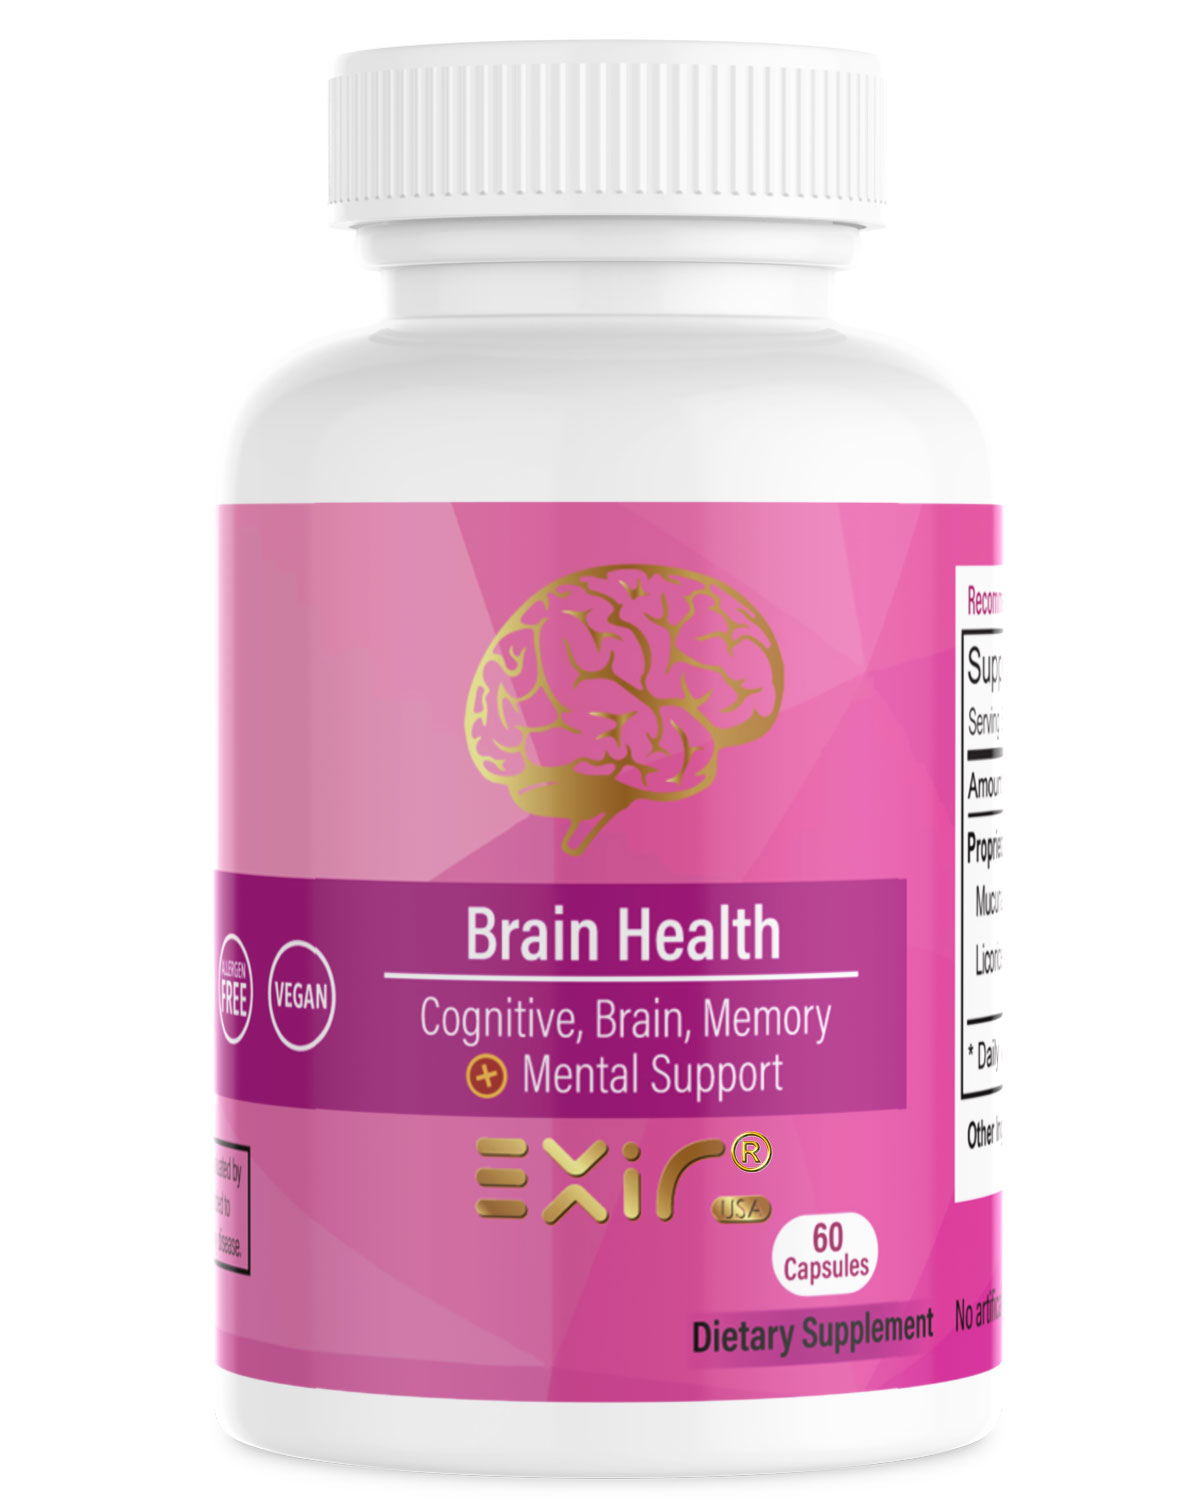 Brain Help Cognitive Brain Memory + Mental Support, 60 Capsules